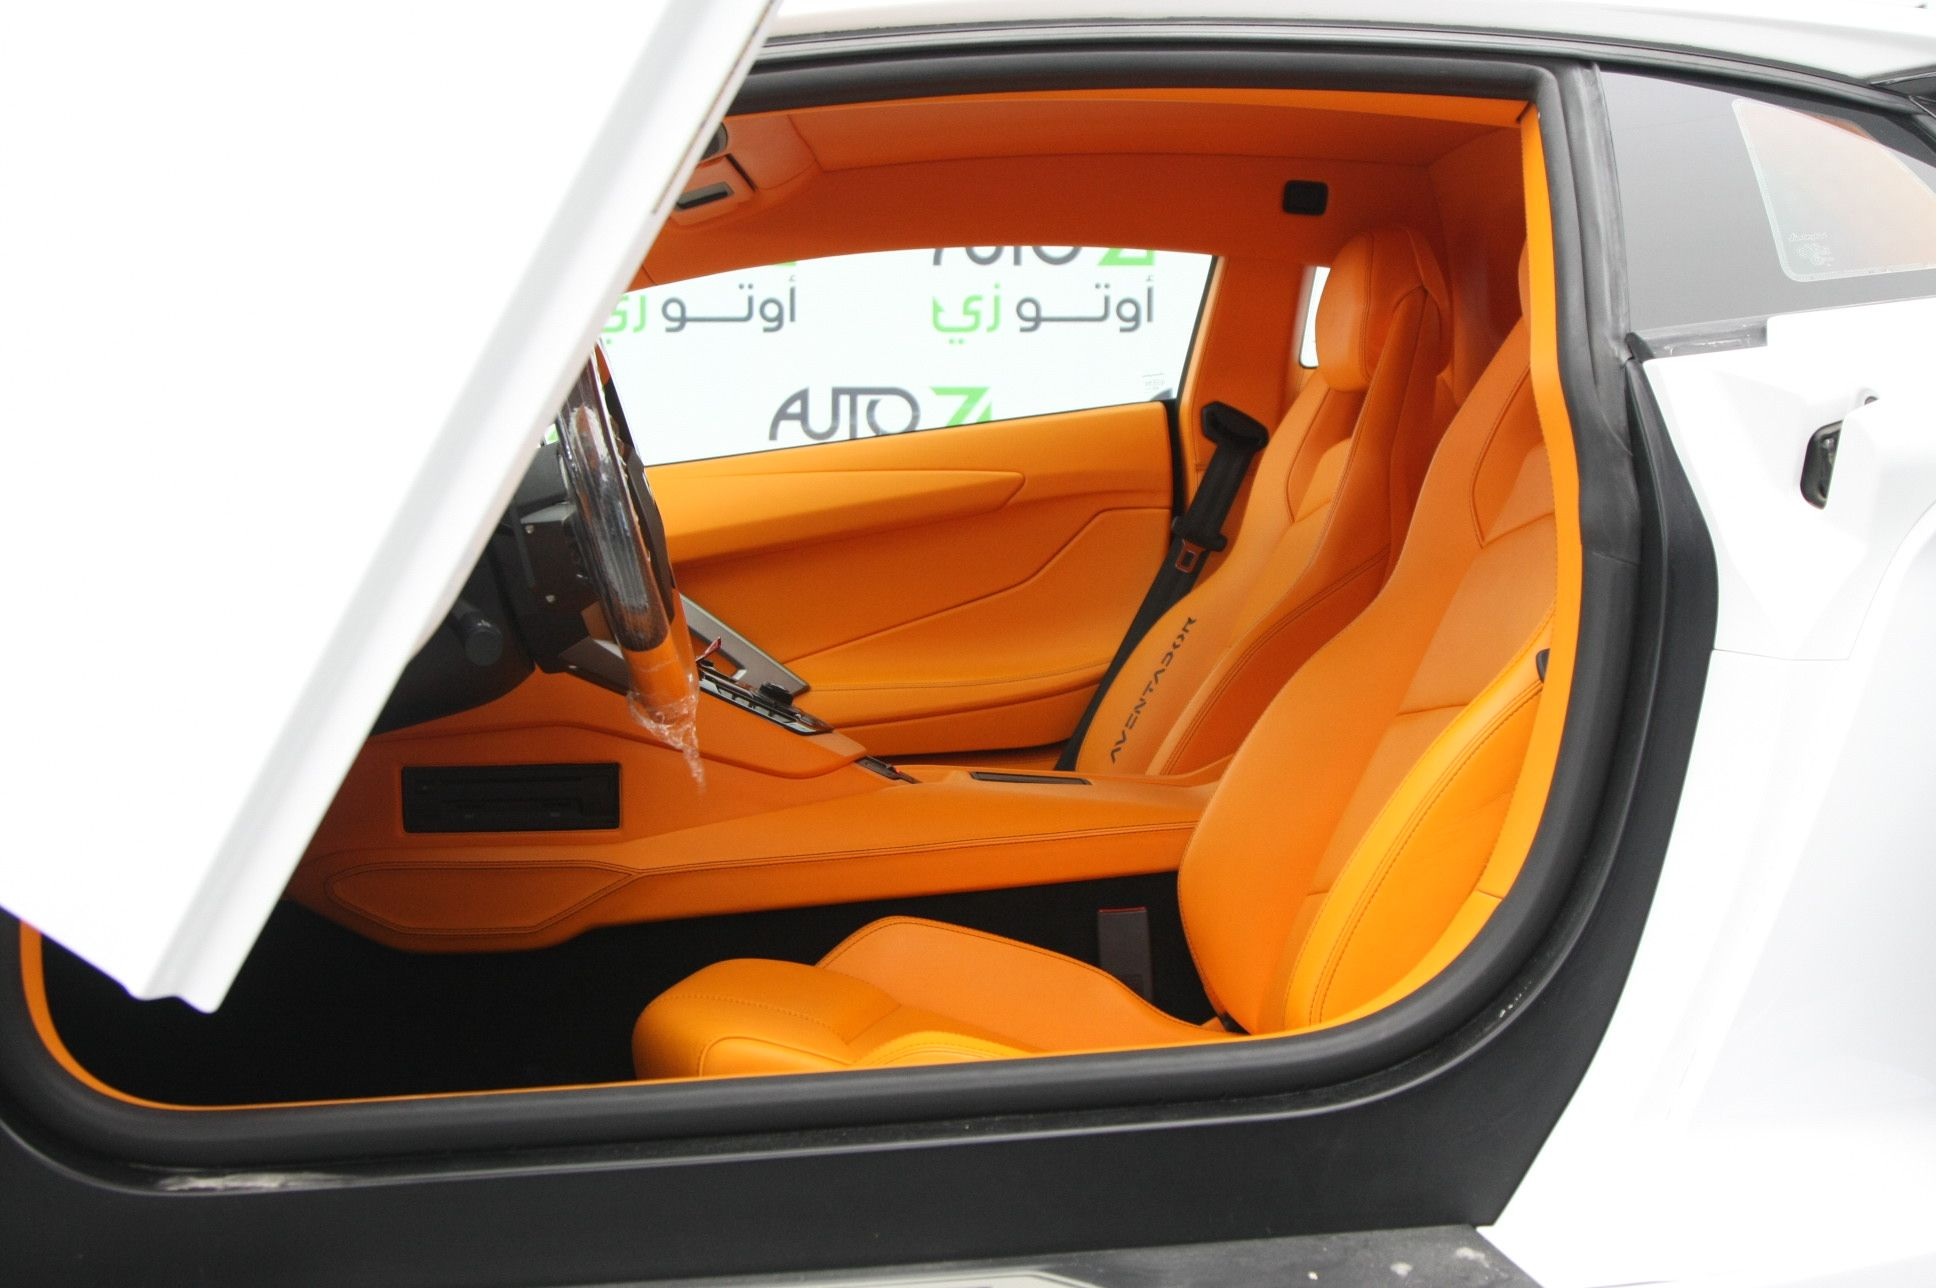 Lamborghini Aventador orange and black arancia interior ...